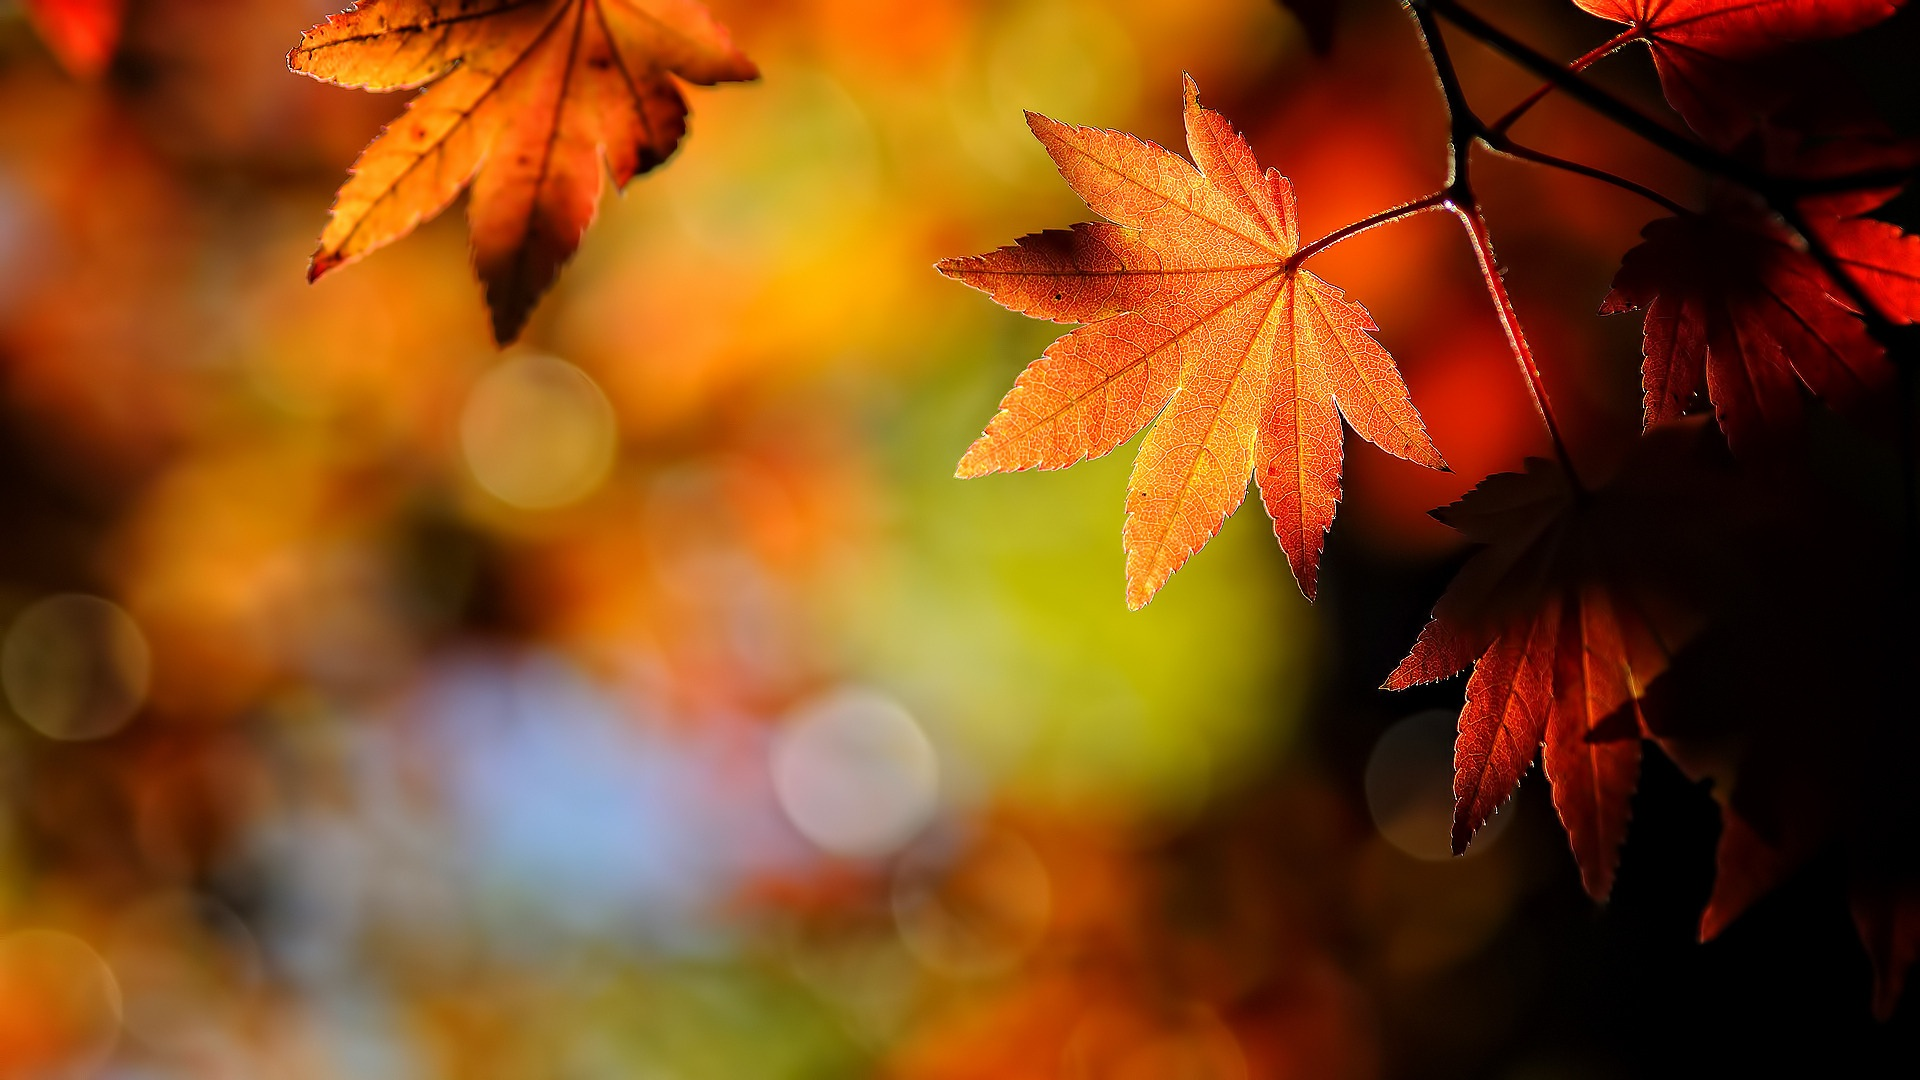 Autumn leaves nature wallpaper 1920x1080.